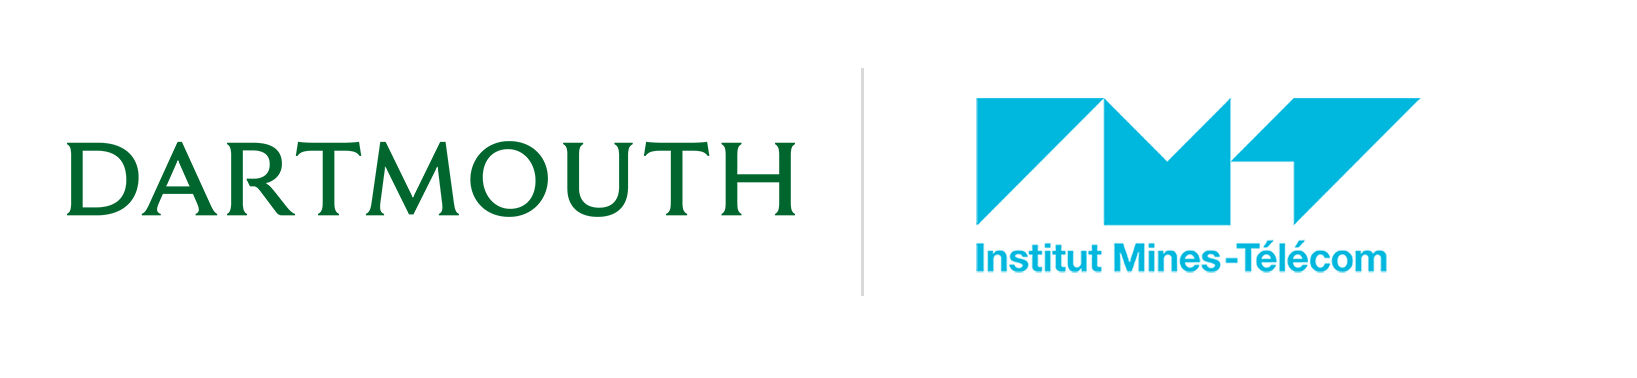 Dartmouth_IMTx Logo